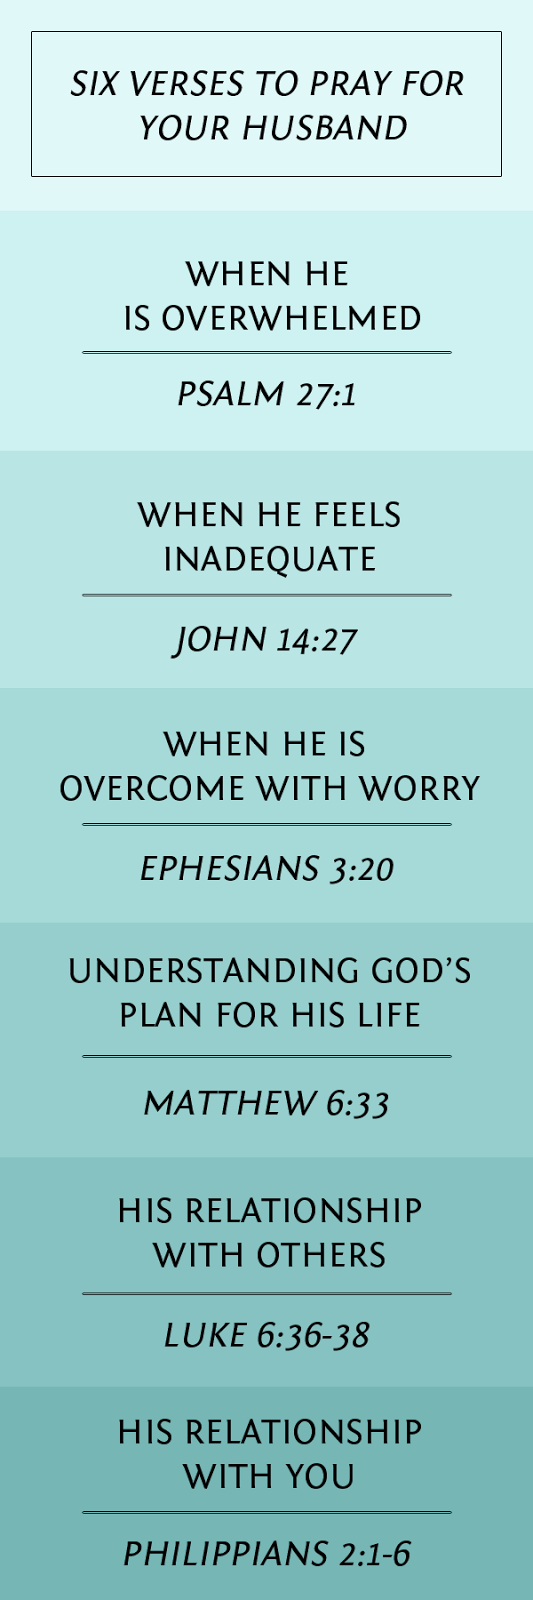 Six Verses to pray for your boyfriend or husband | Frases